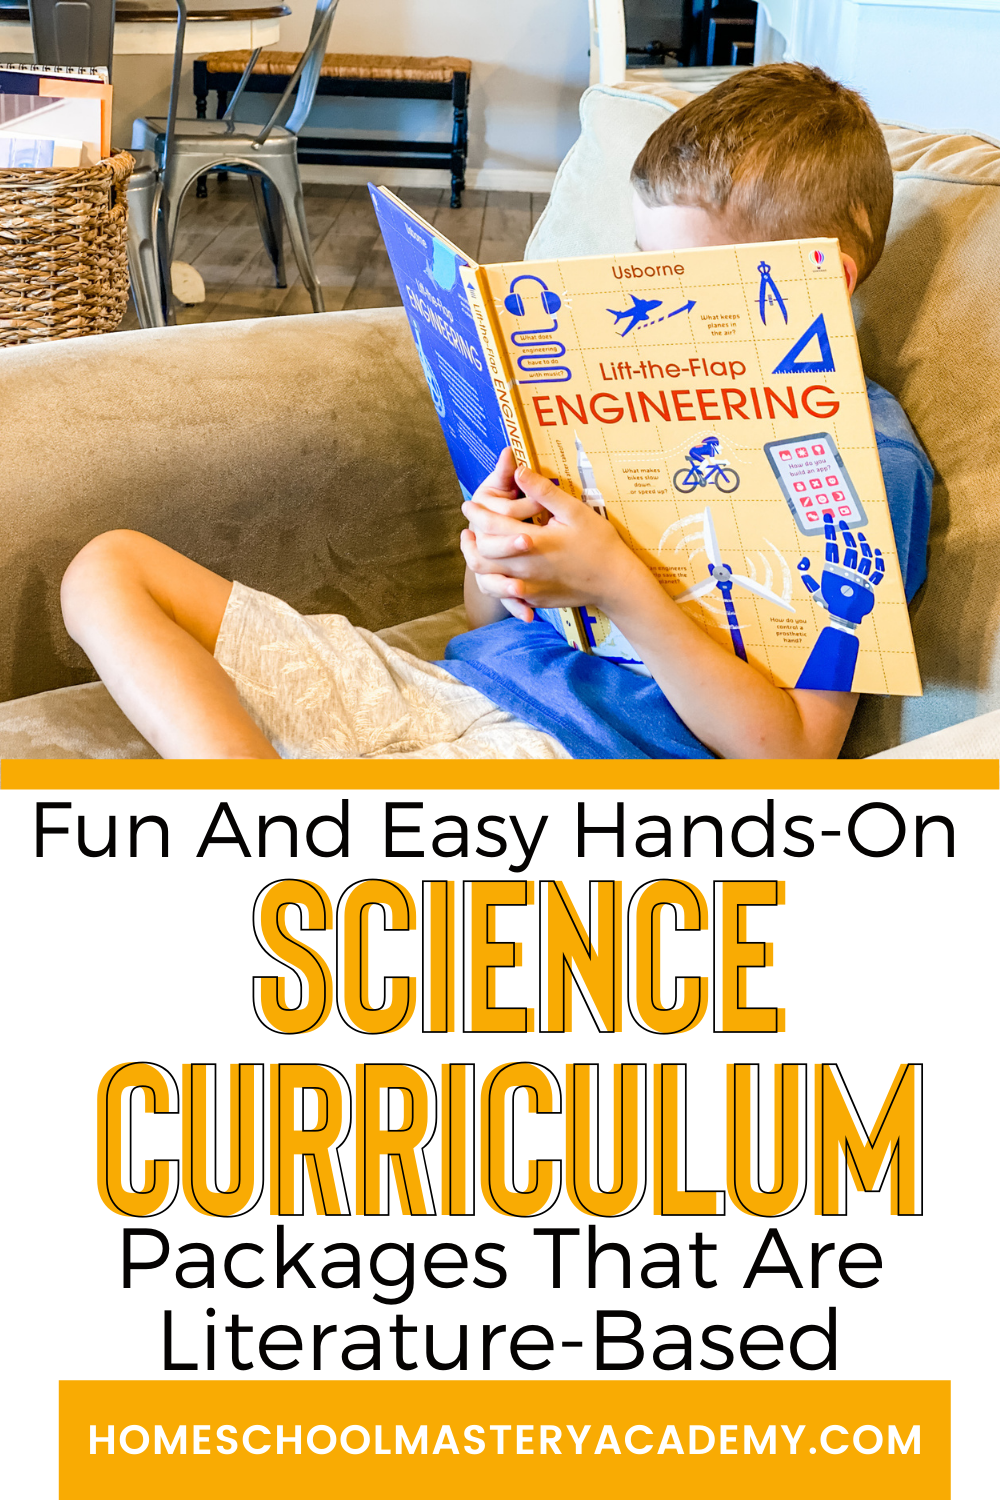 A Hands-On Science Curriculum does not have to equal more work for homeschool parents. Check out these easy and fun packages! #homeschoolscience #sciencecurriculum #handsonscience #sciencekits